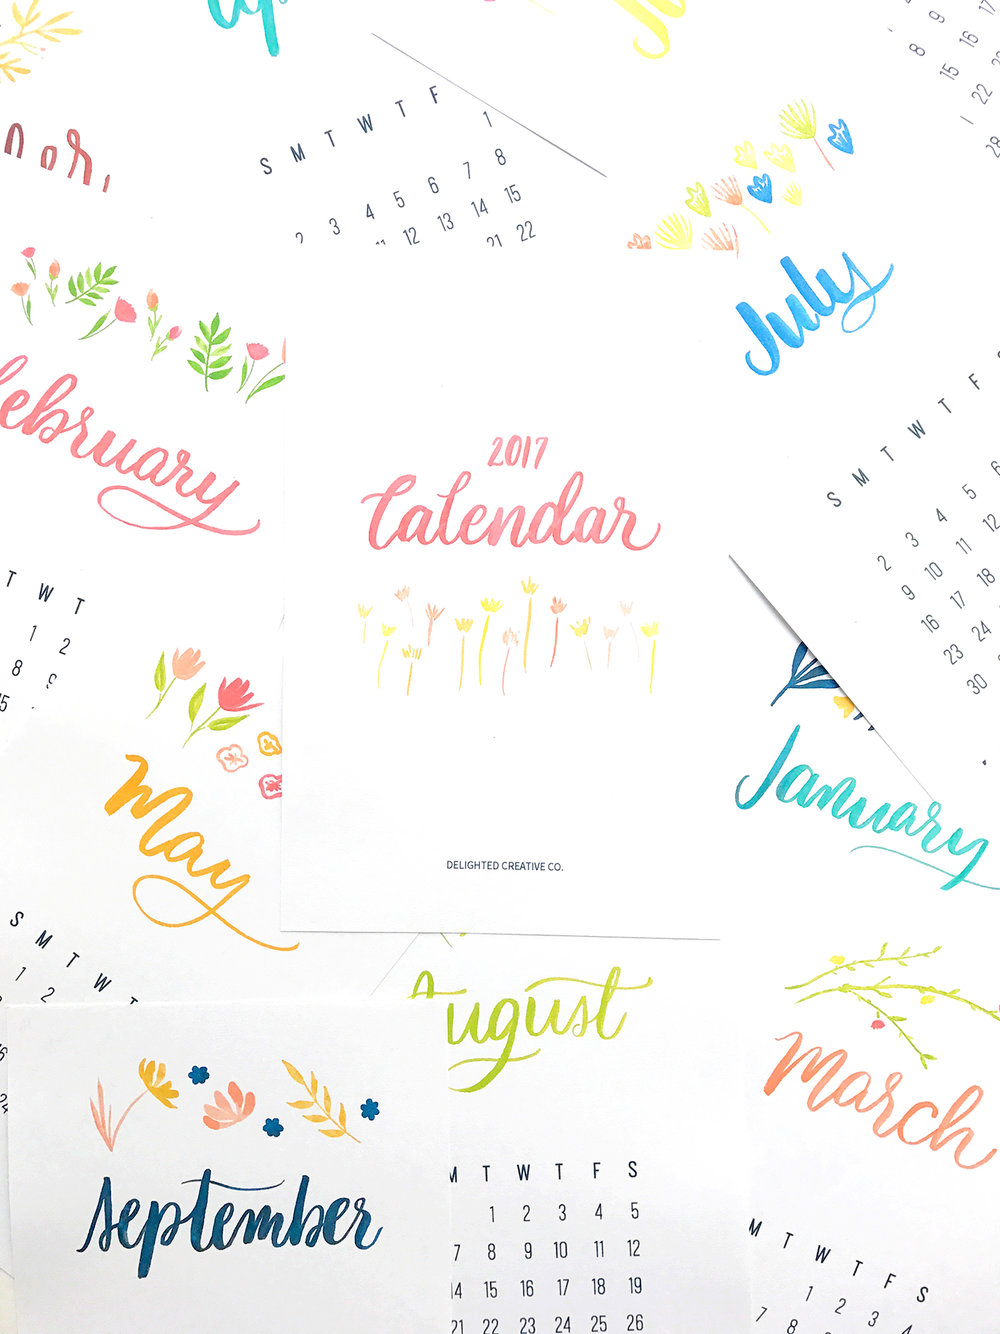 Printable 2017 Calendar • free download at DelightedCo.com